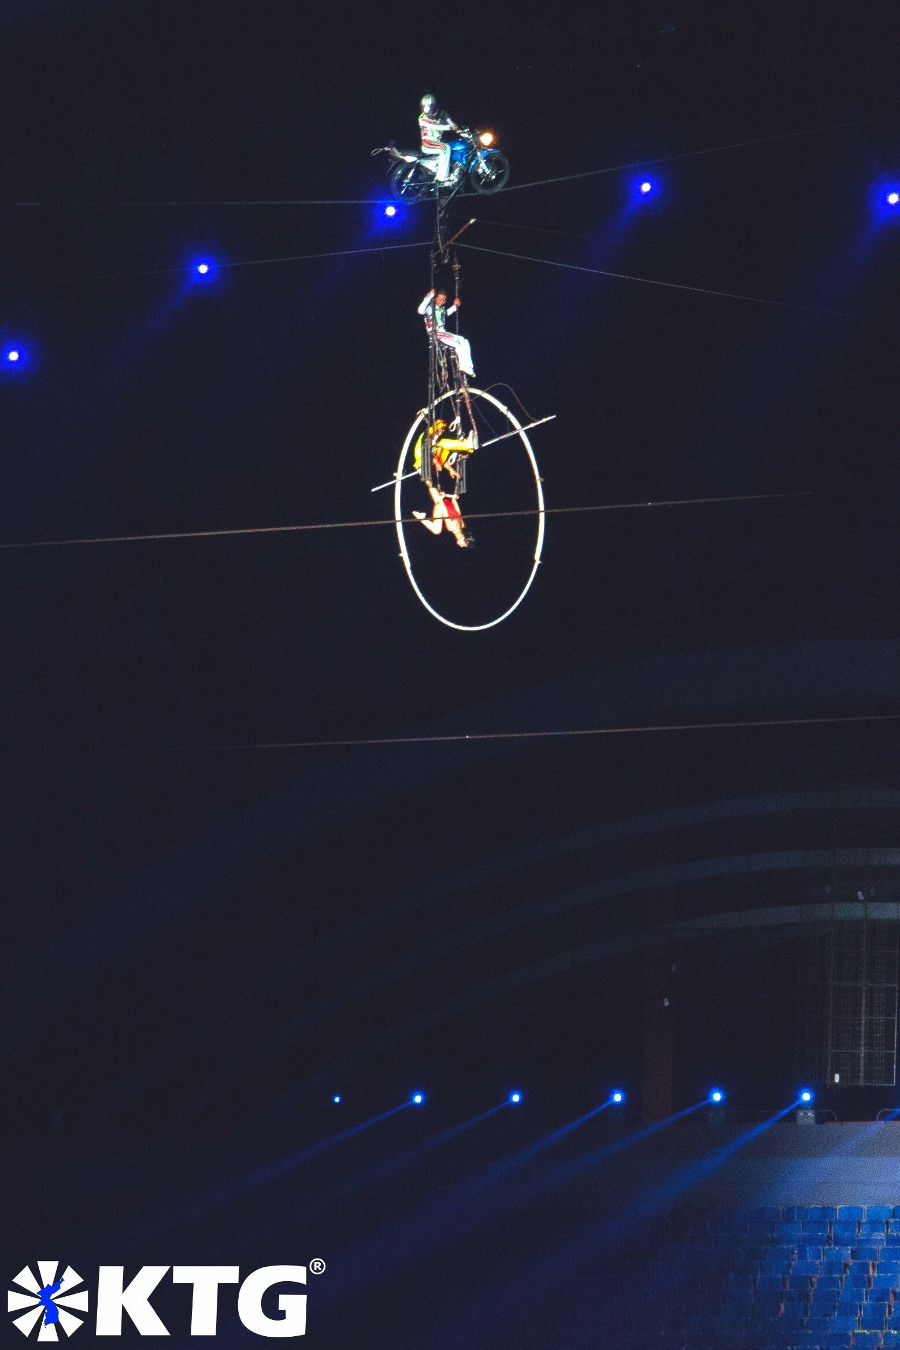 Motorbike on a line and acrobatics show at the Mass Games in North Korea, DPRK. Photo in North Korea taken by KTG Tours